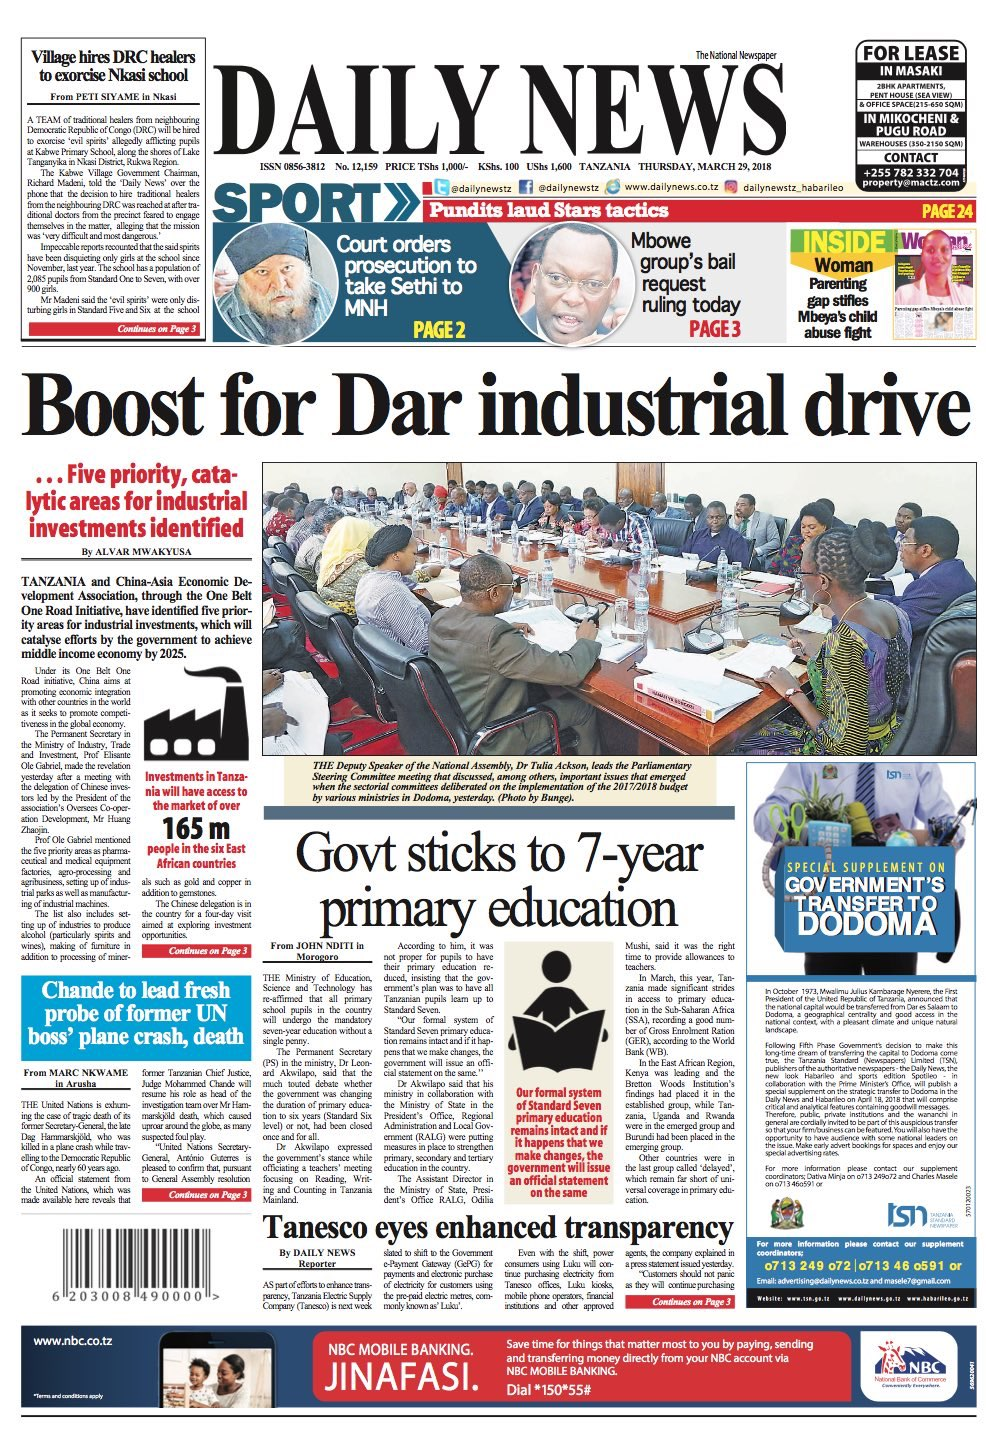 BOOST FOR DAR INDUSTRIAL DRIVE